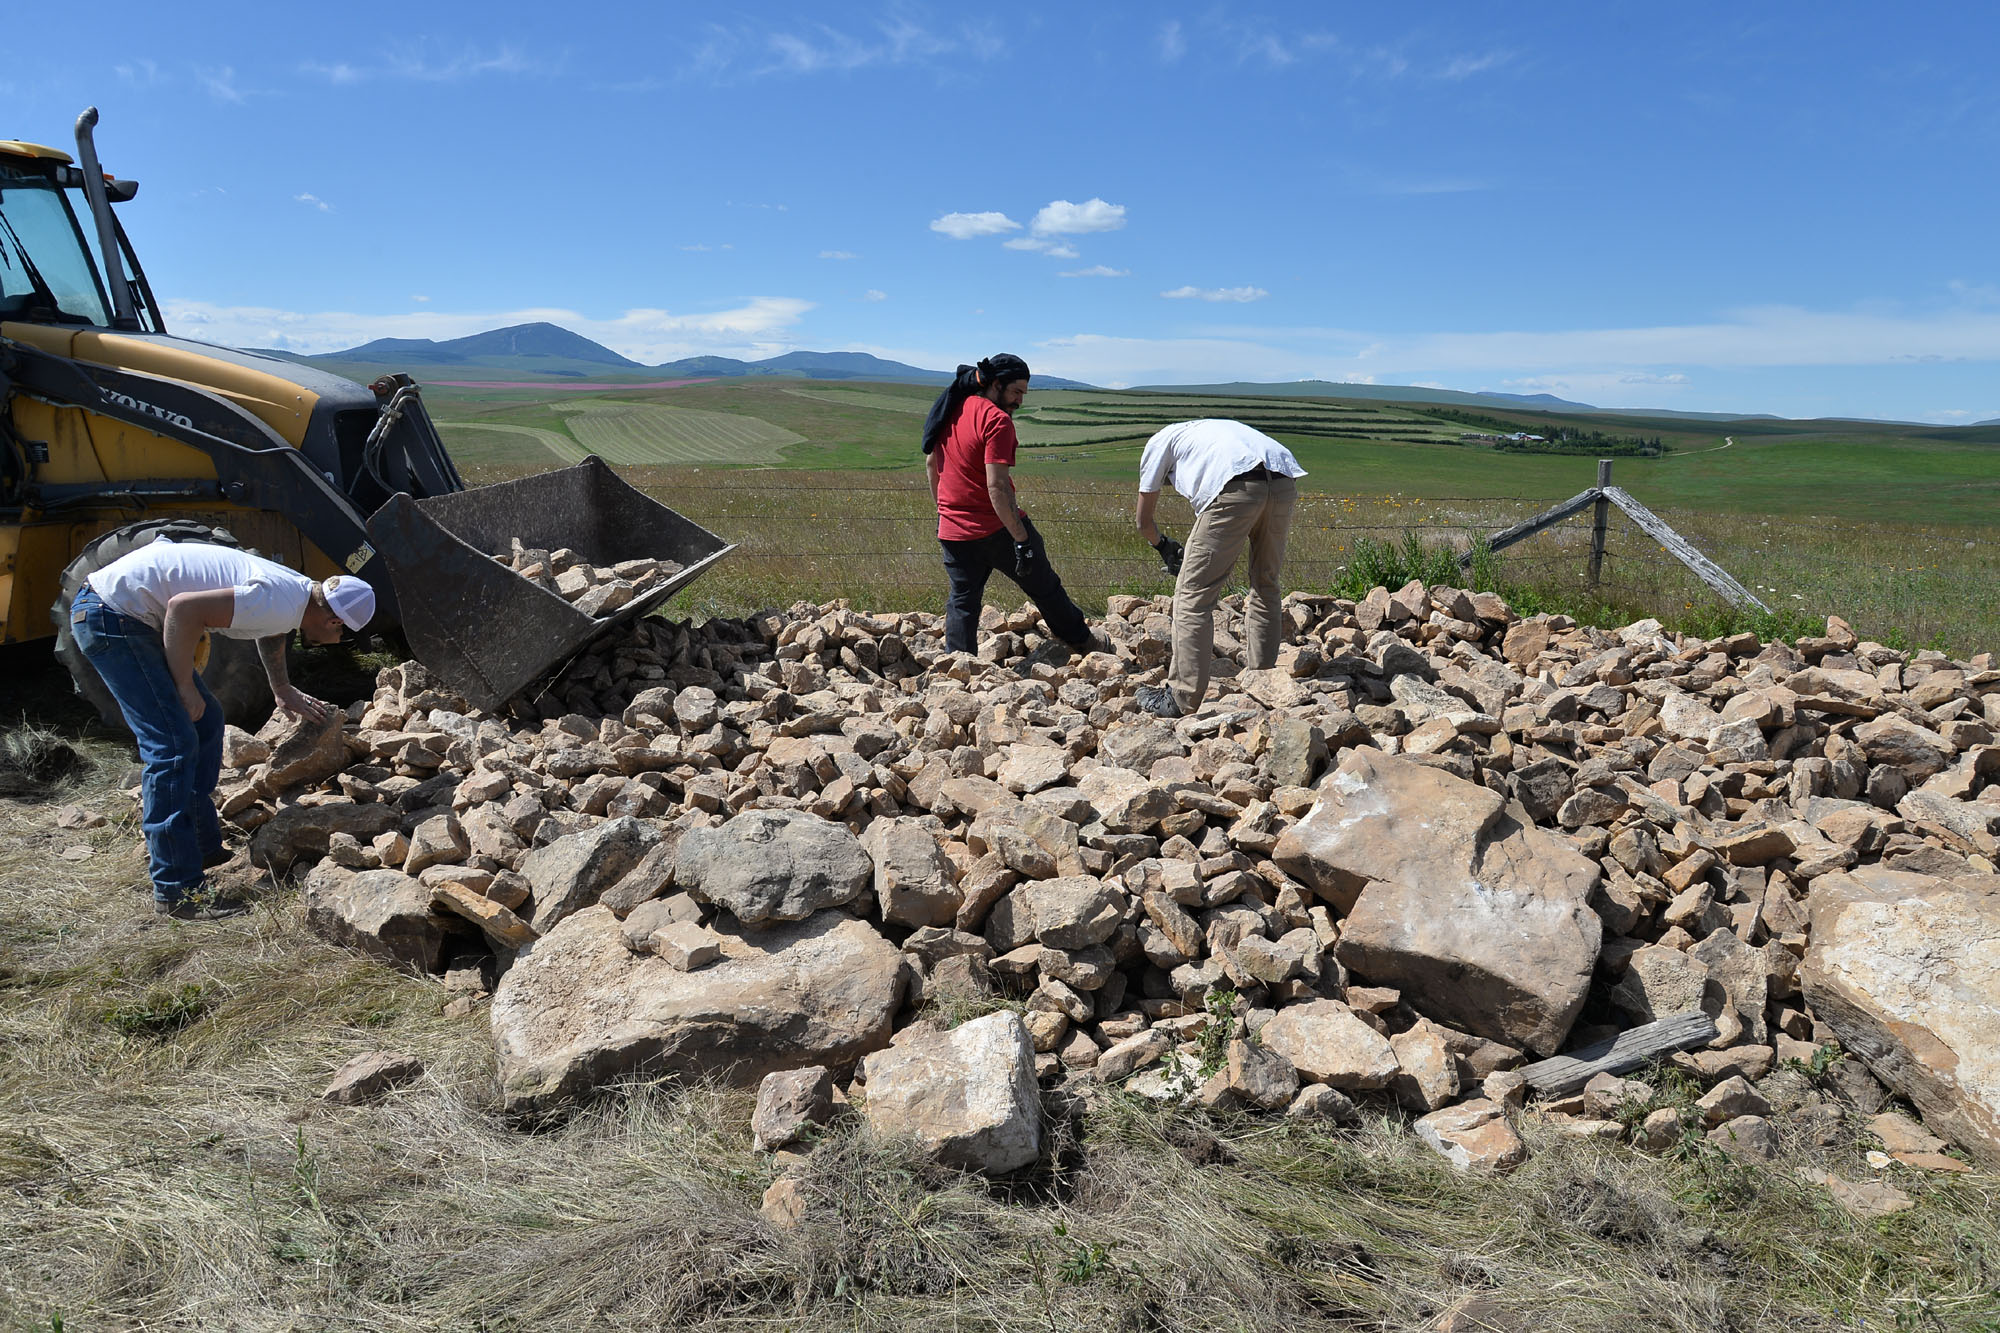 Stone from the piles is hand-picked for processing.